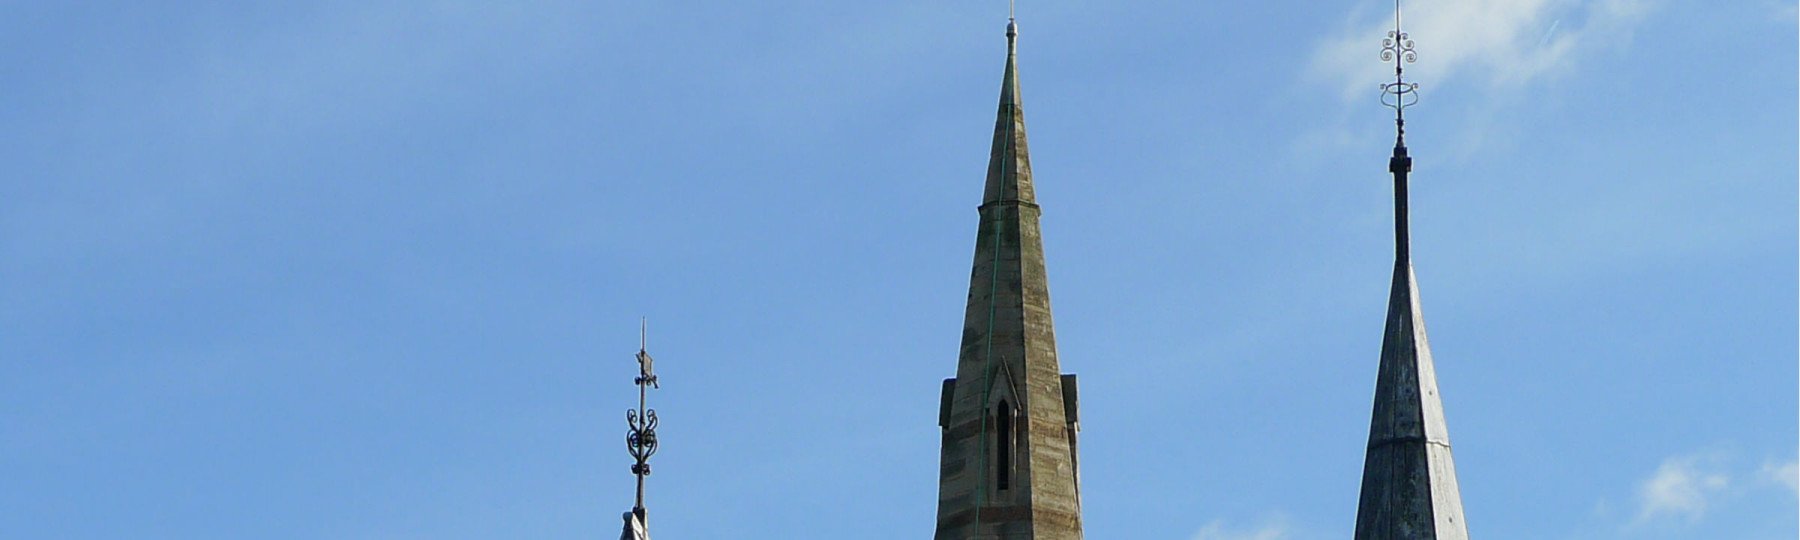 Trinity URC three spires